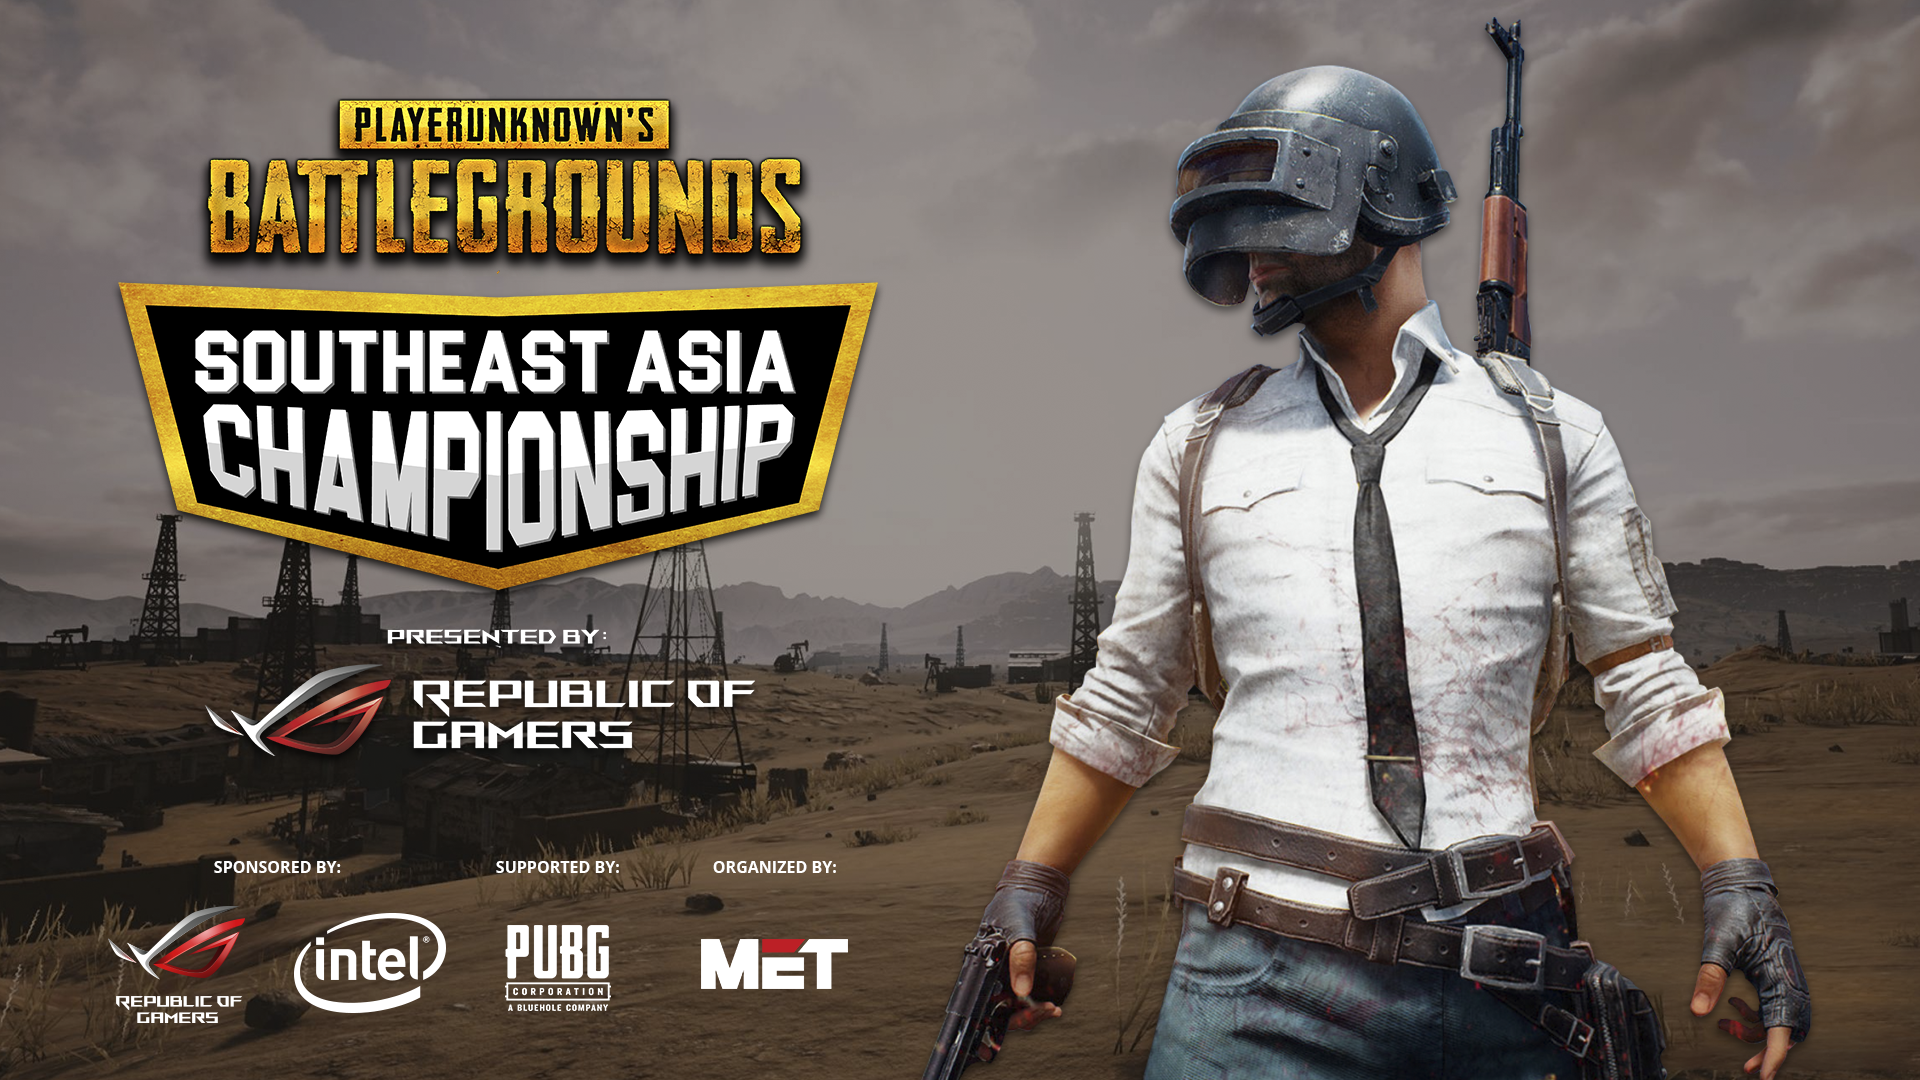 ASUS ROG Partners with PUBG for SEA Championship